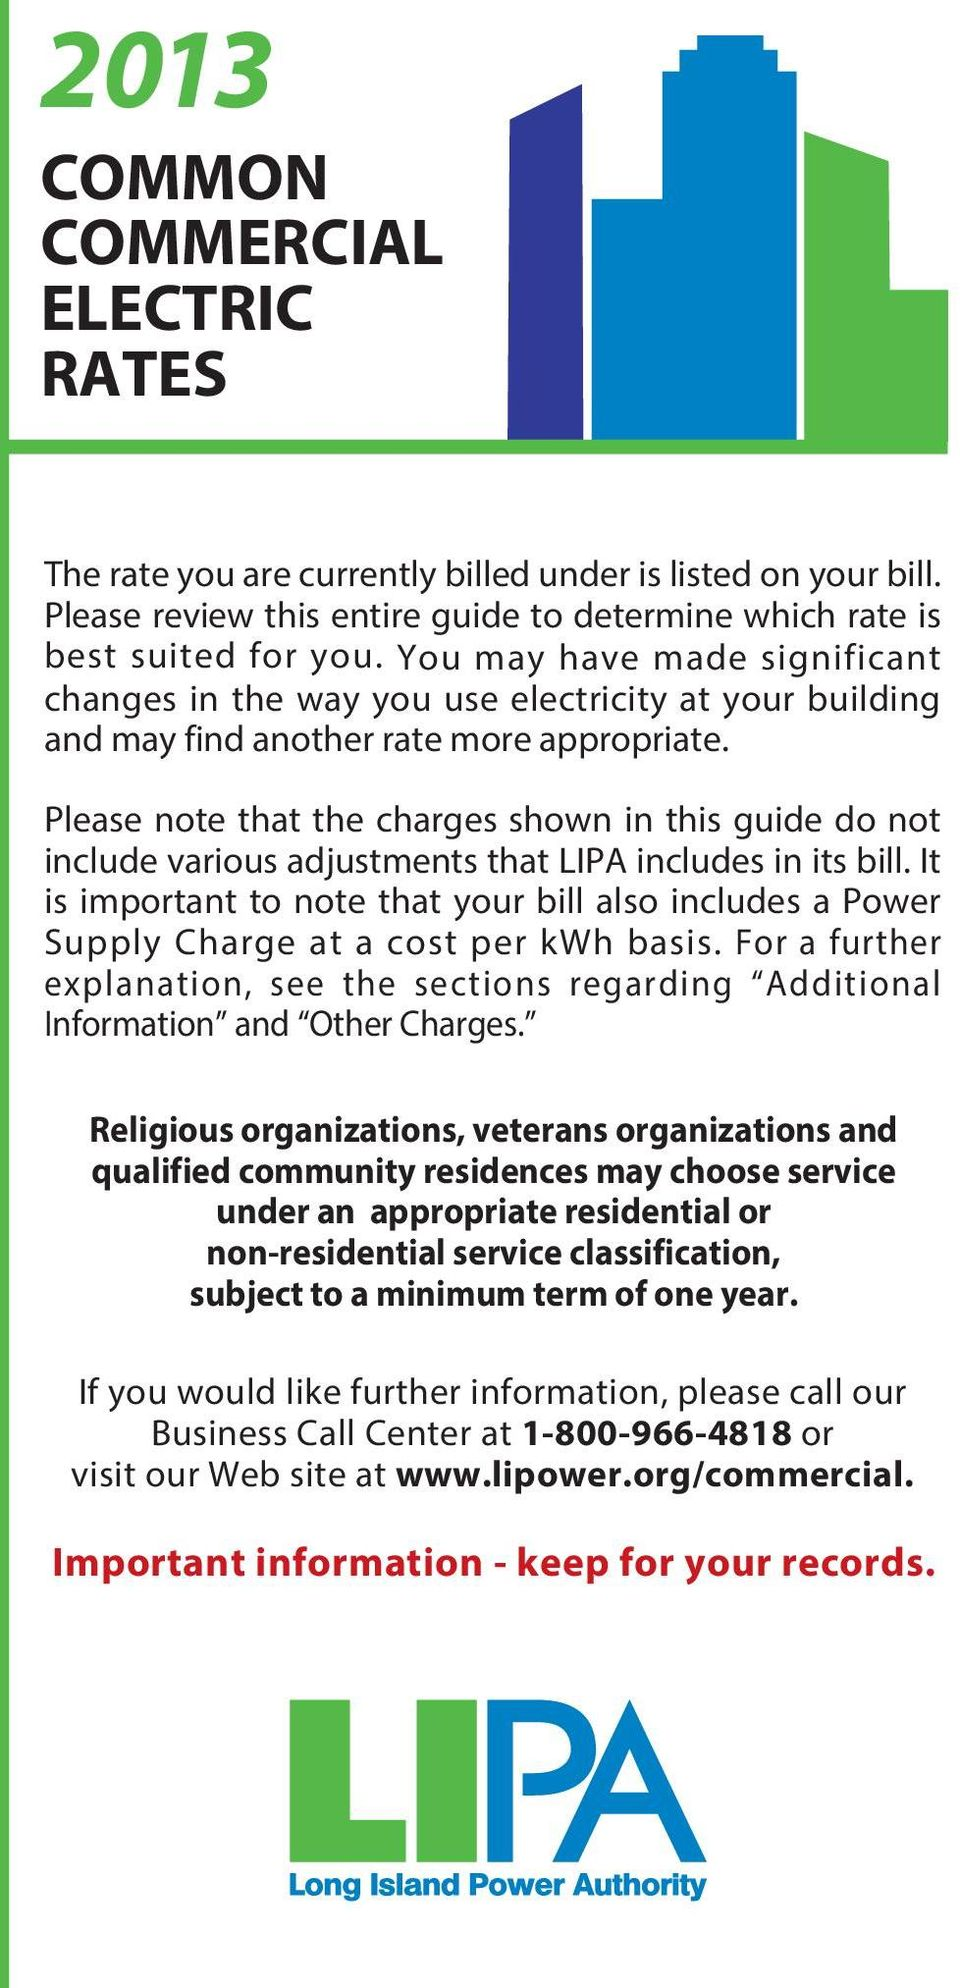 Please note that the charges shown in this guide do not include various adjustments that LIPA includes in its bill.